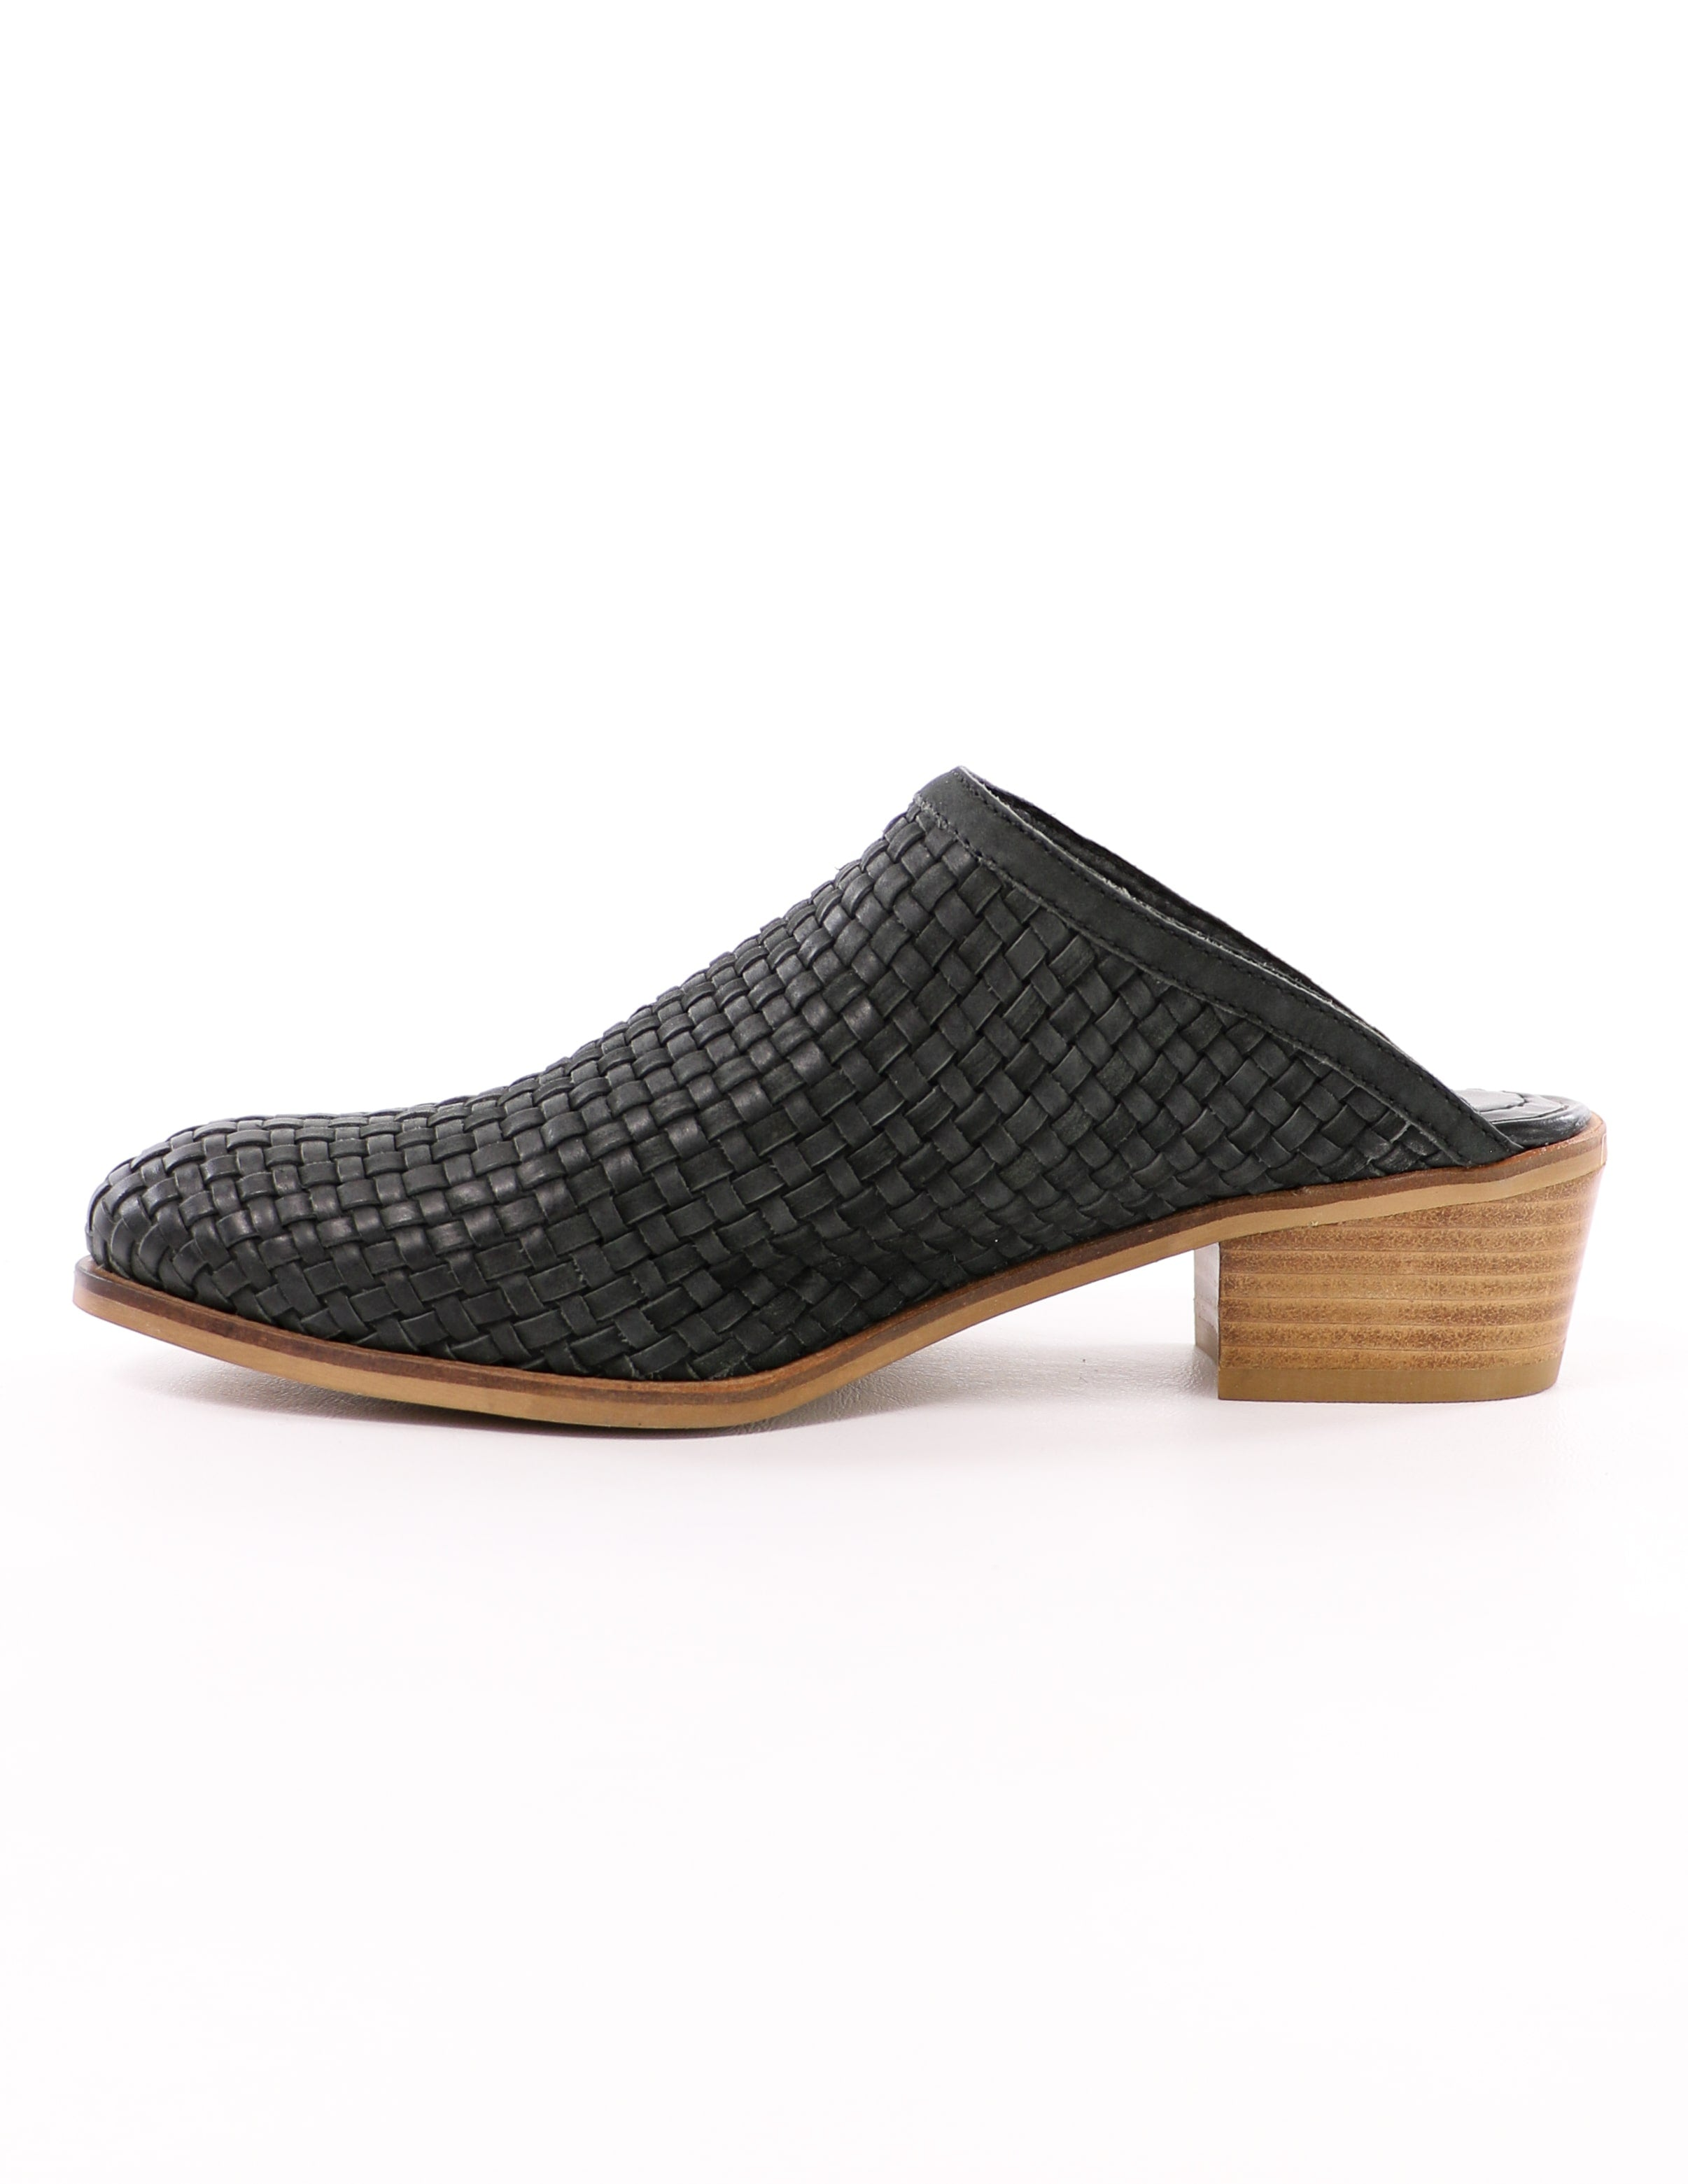 side of the black volatile the woven one mule with tan wood sole and heel - elle bleu shoes